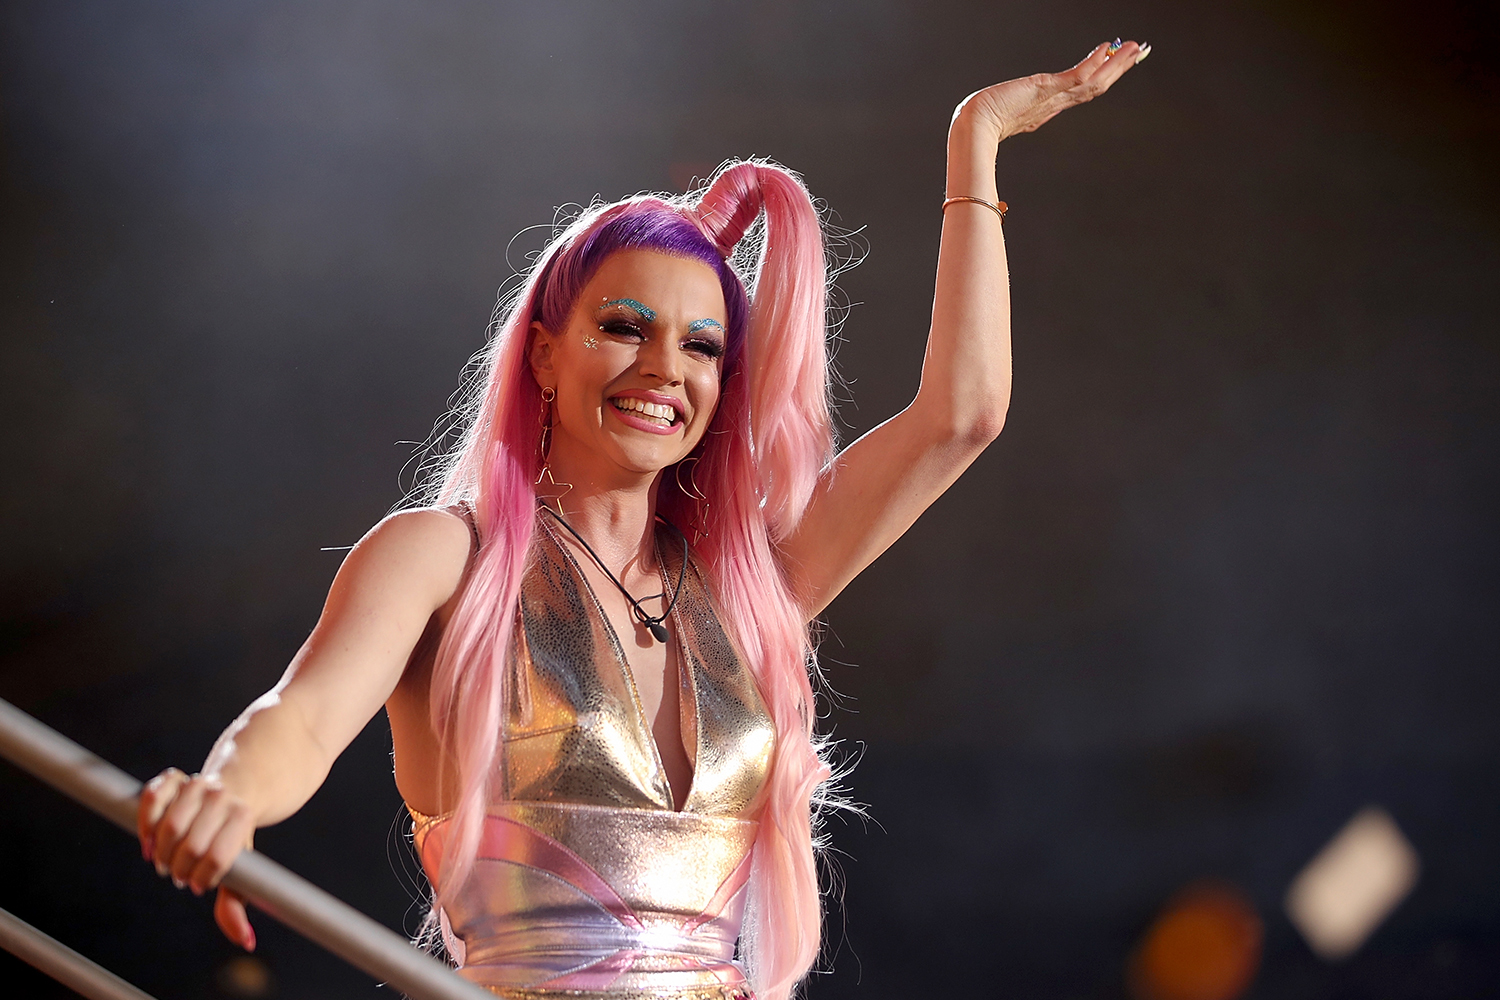 The Bi Lifes Courtney Act reveals the truth about her